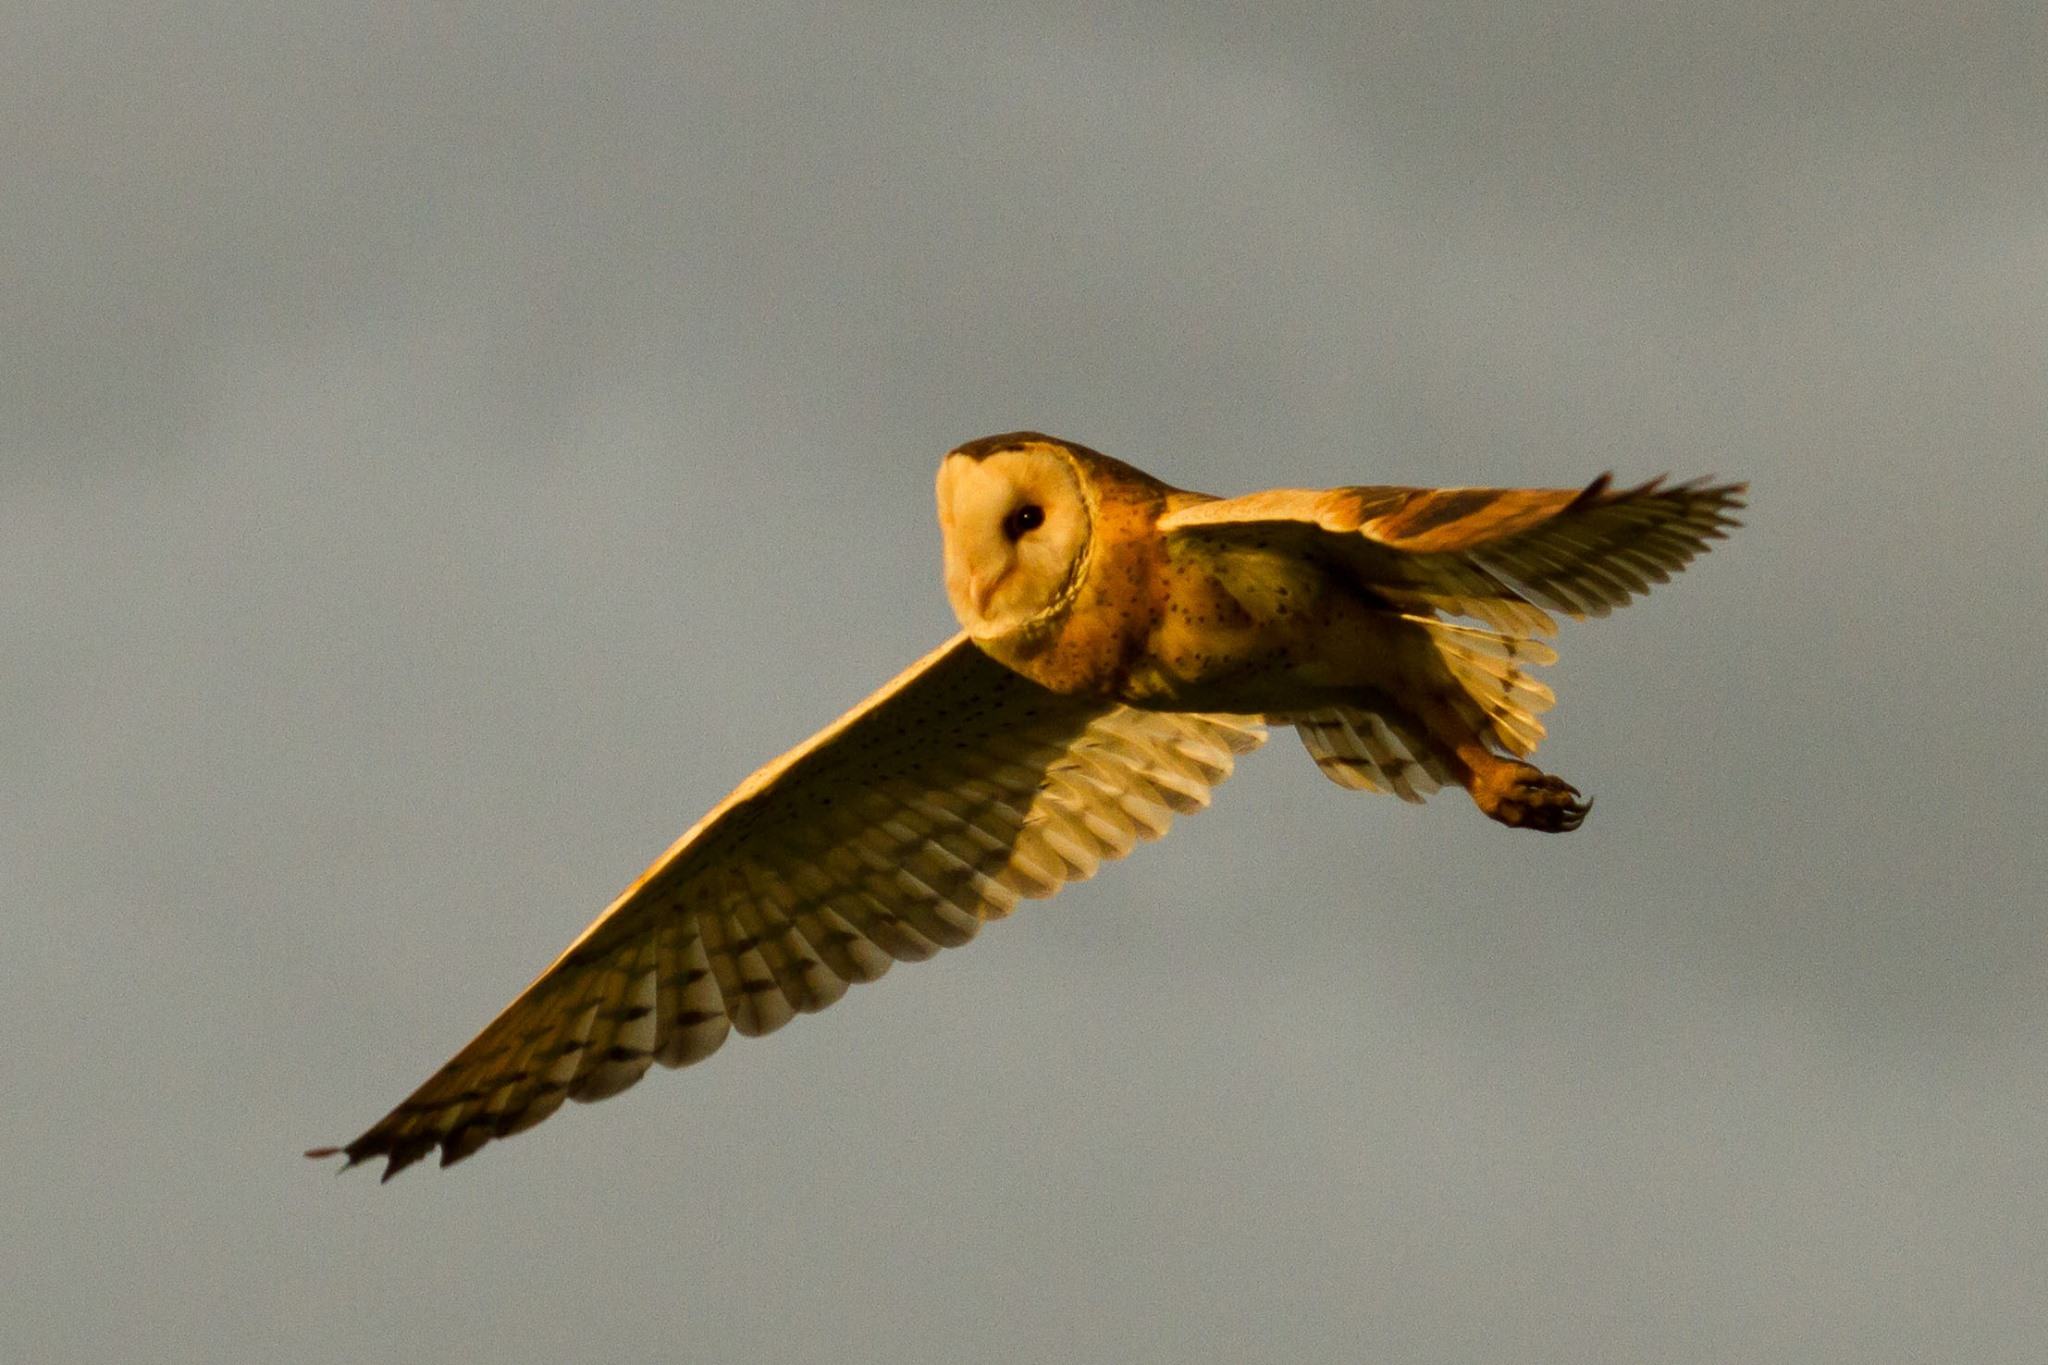 An Eastern Grass Owl takes flight in the late afternoon sun. Photo: Nigel Jackett